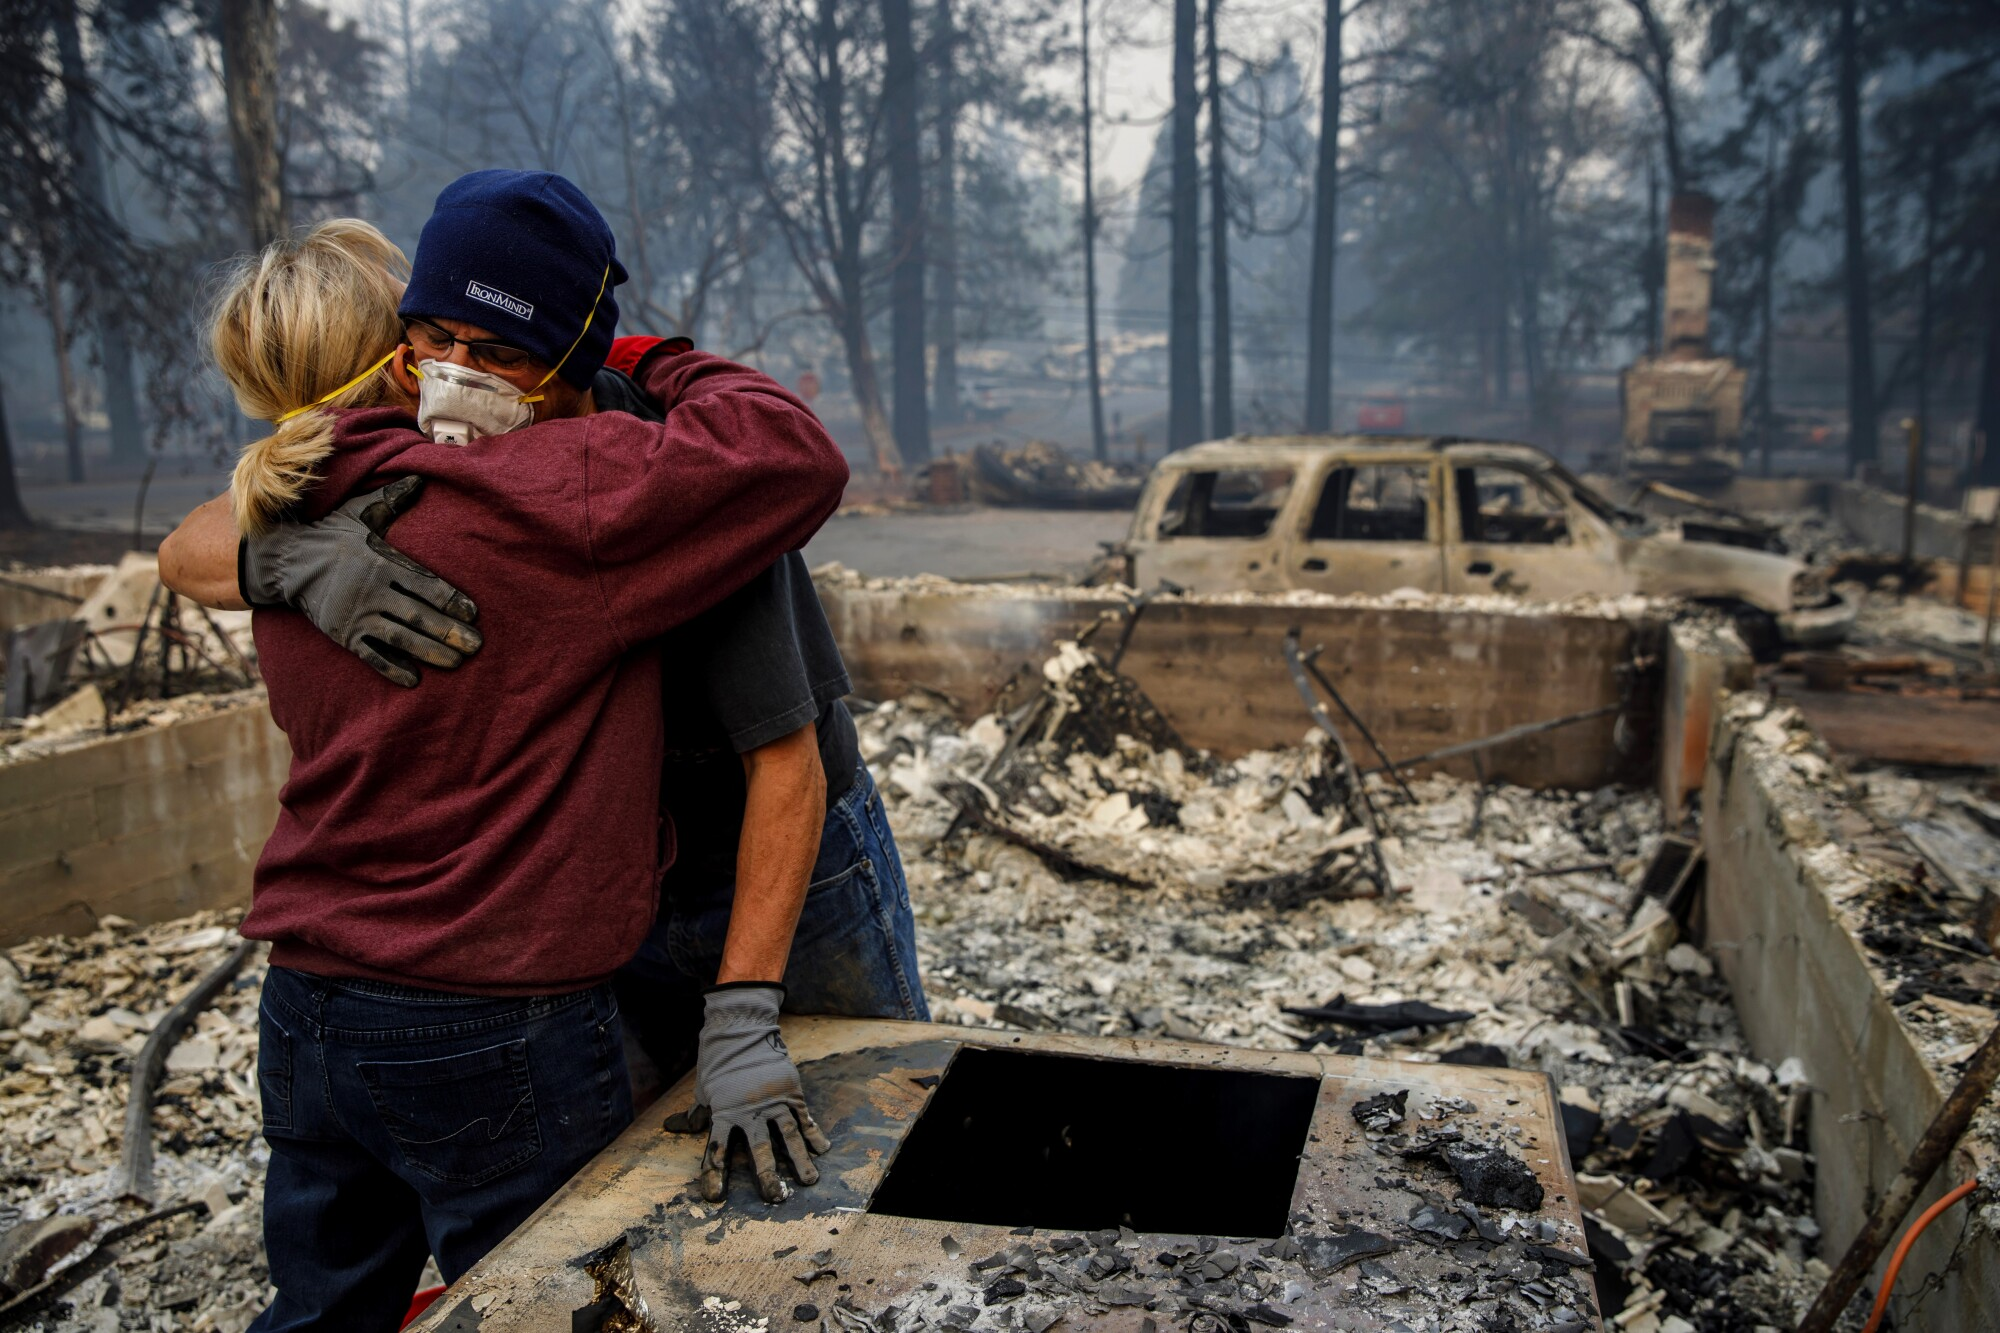 MICHAEL JOHN RAMIREZ hugs his wife, Charlie, as they search the ruins of their Paradise home after the Camp fire.